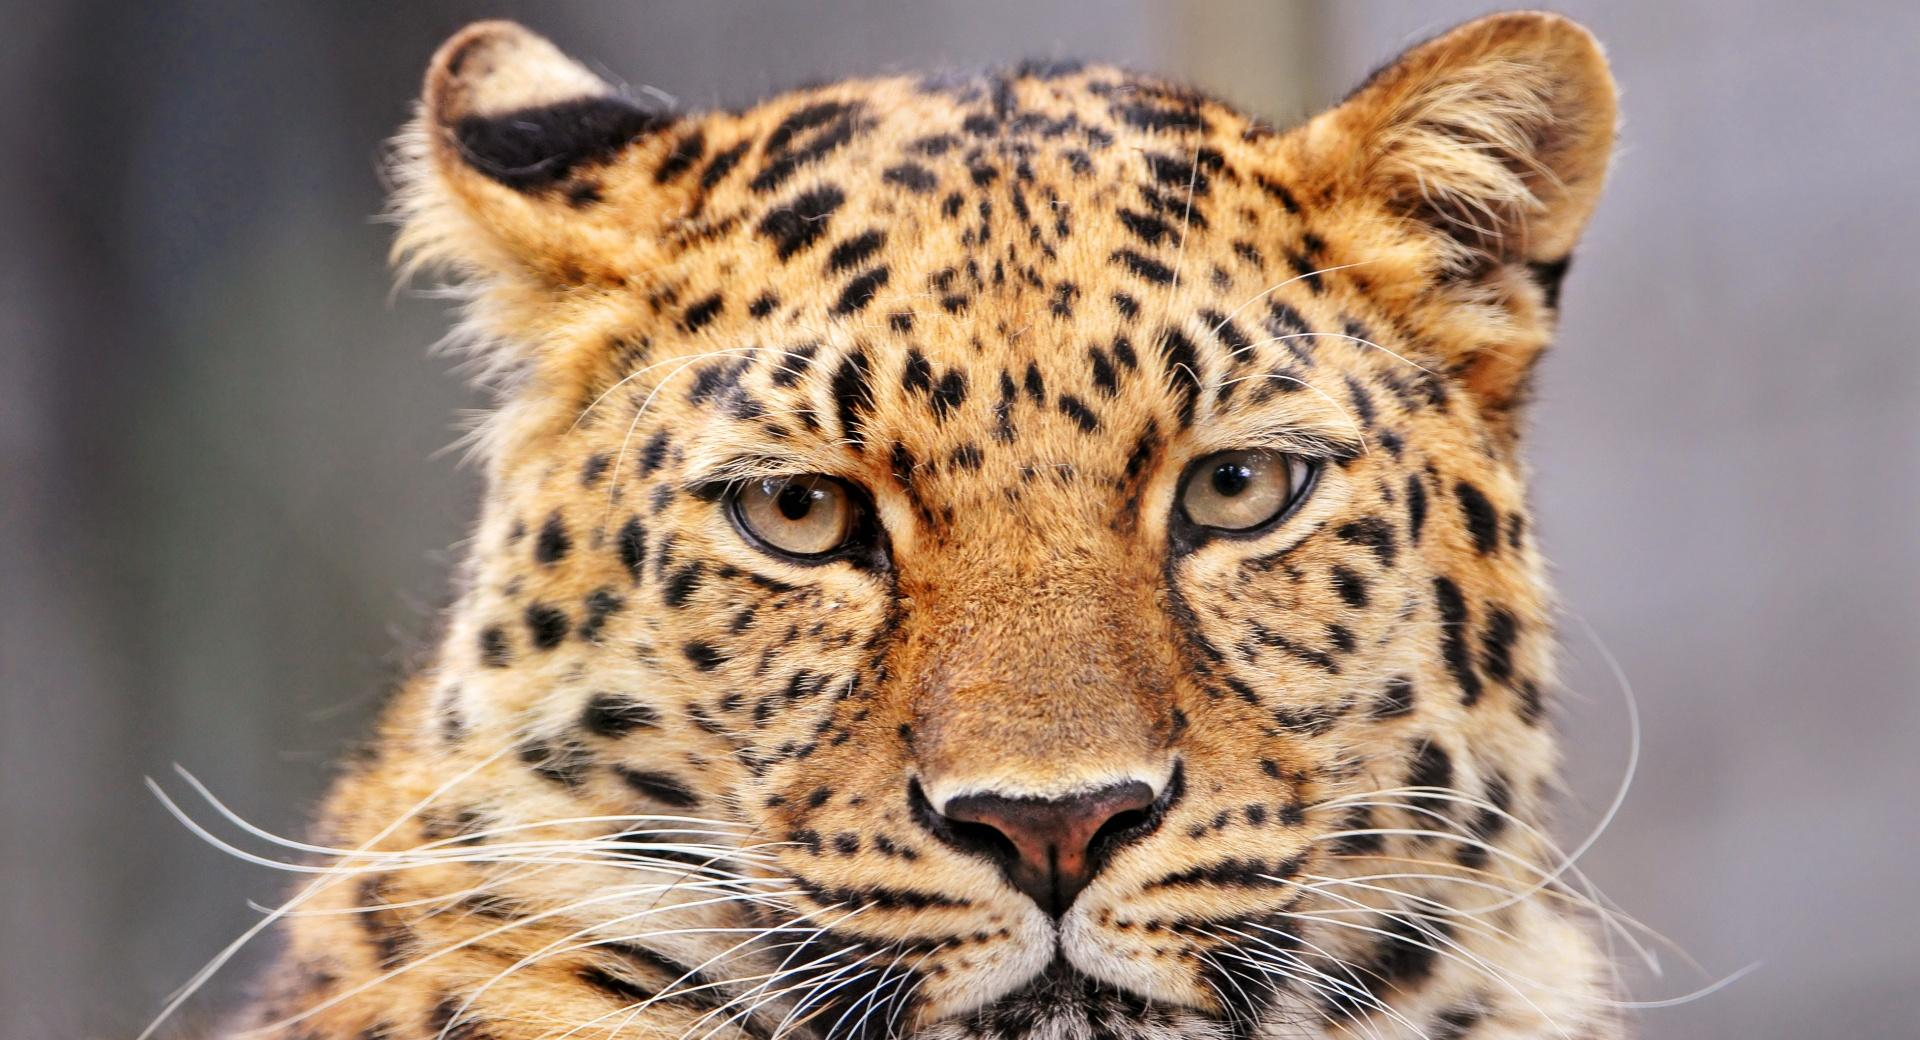 Leopard With A Bored Look wallpapers HD quality